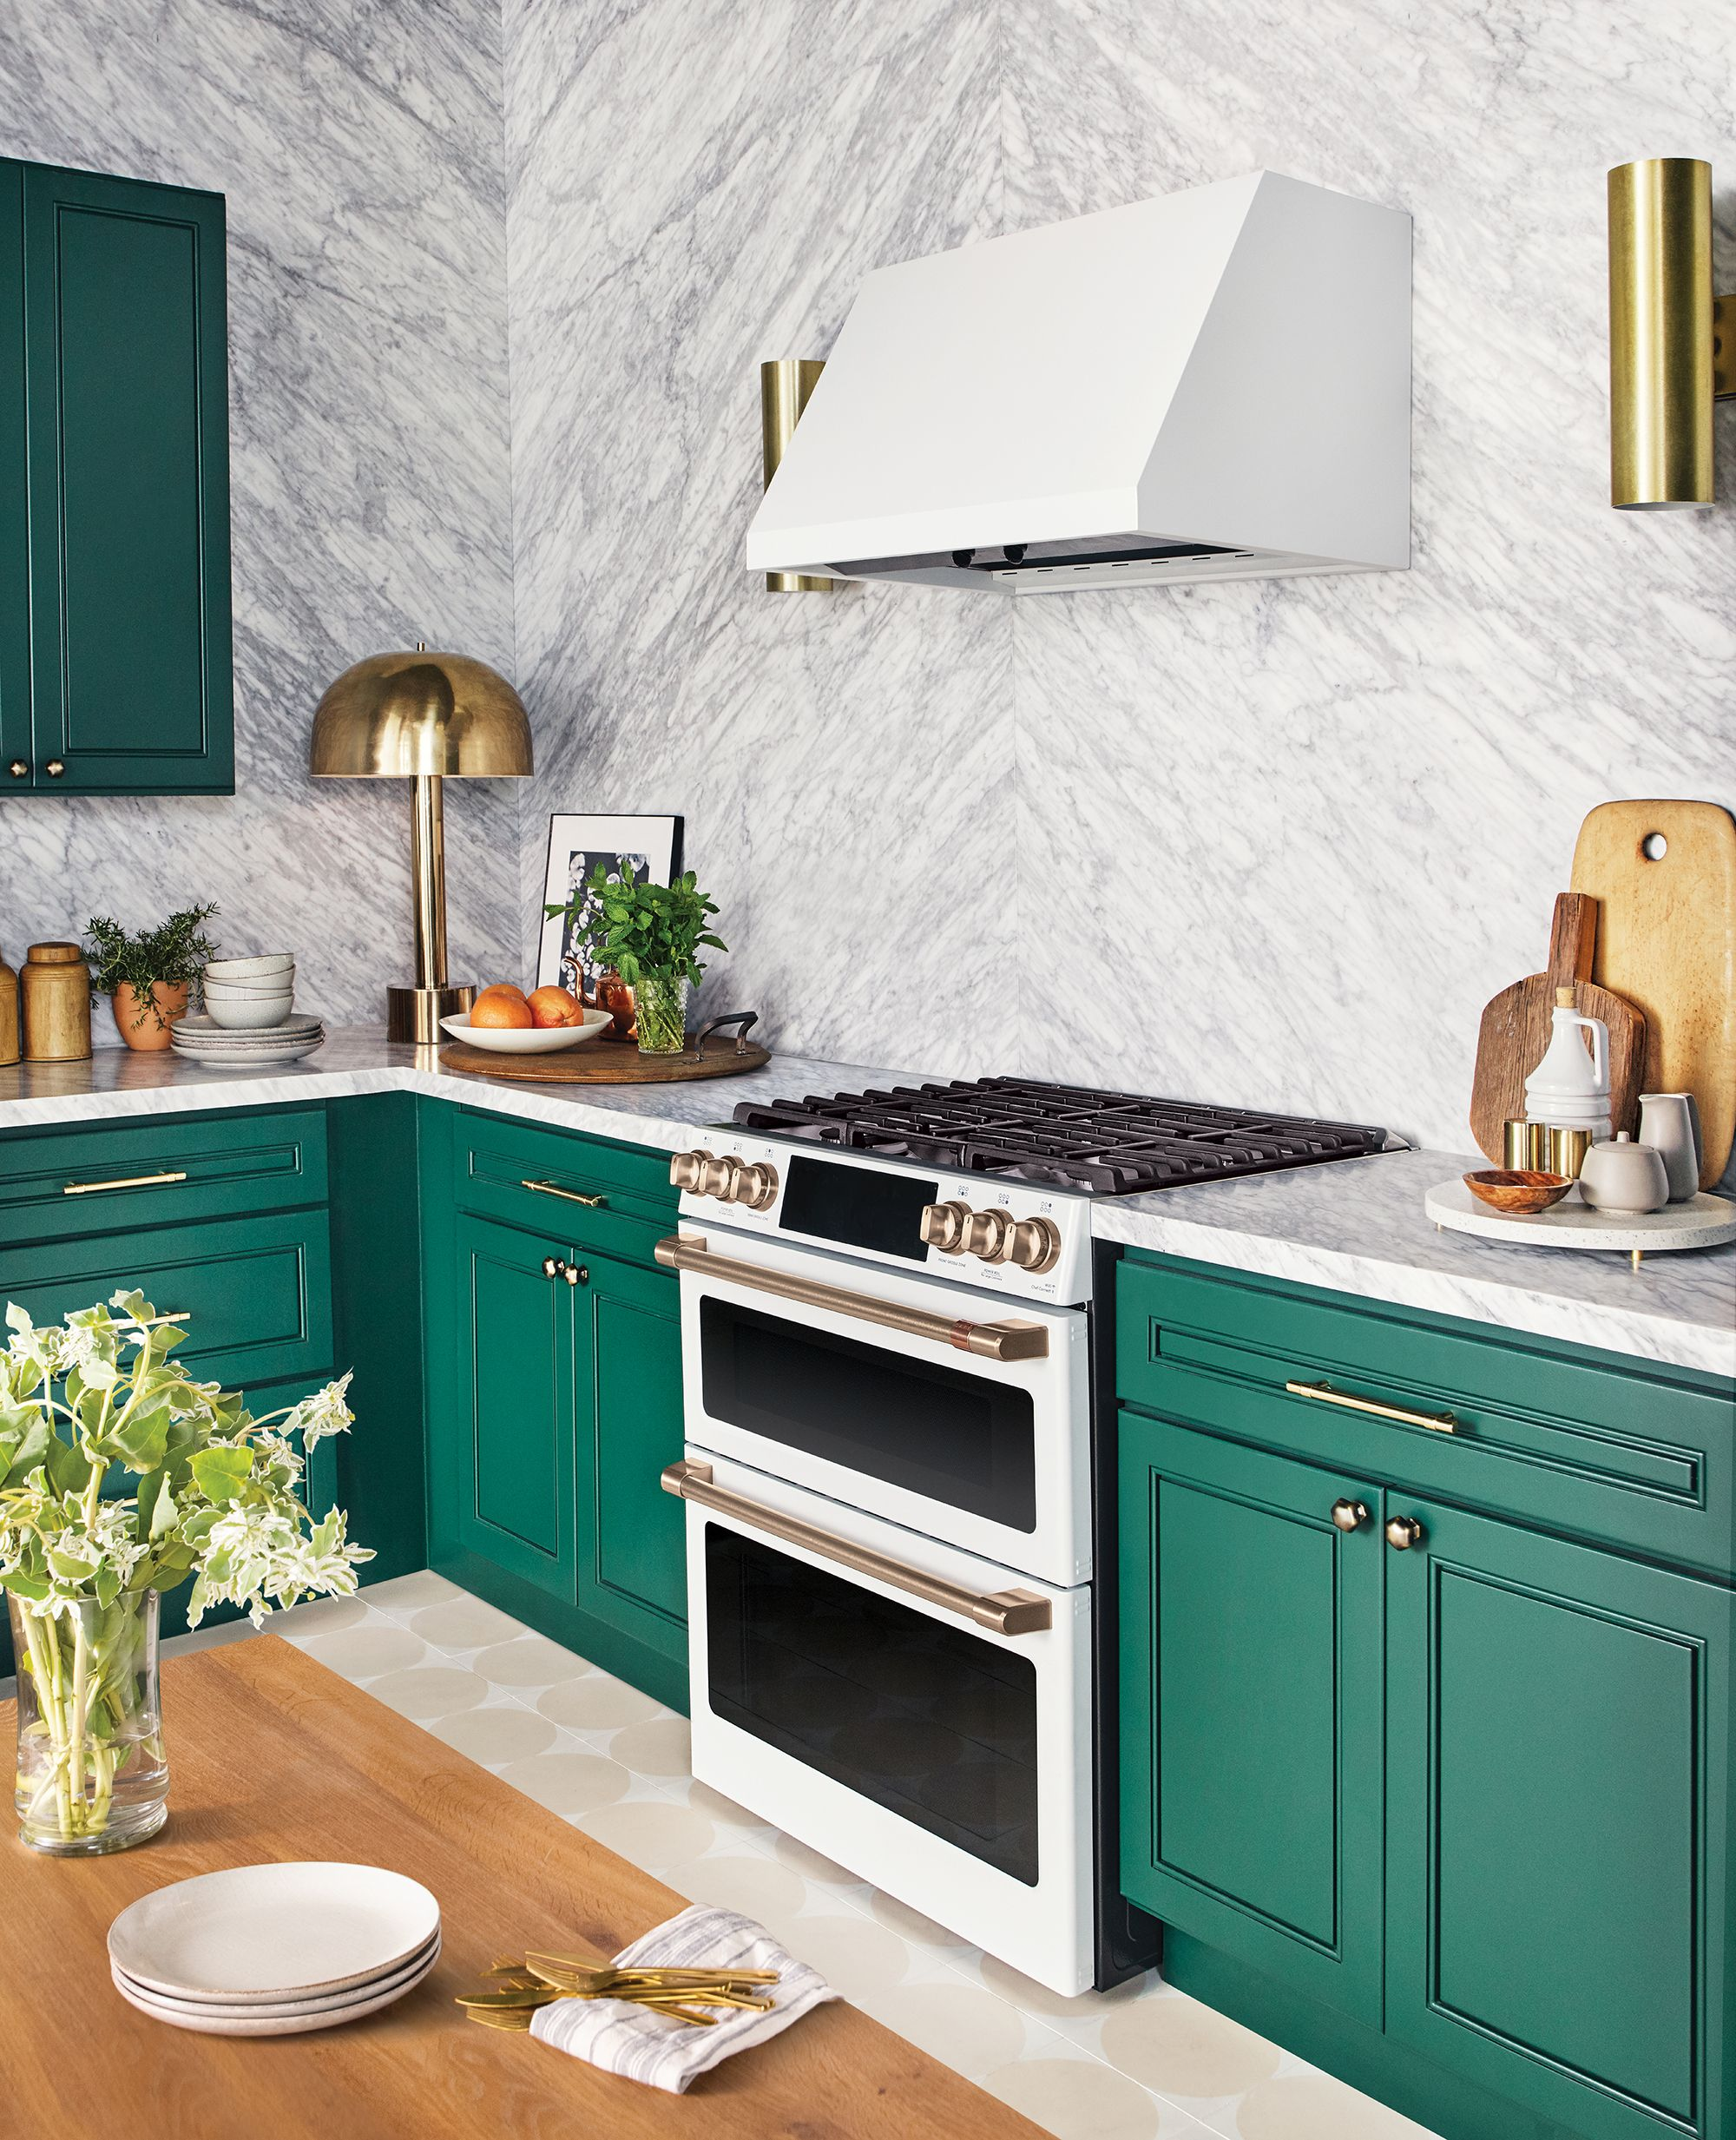 Best Stylish Cooking That Performs Kitchen Remodel Kitchen 640 x 480